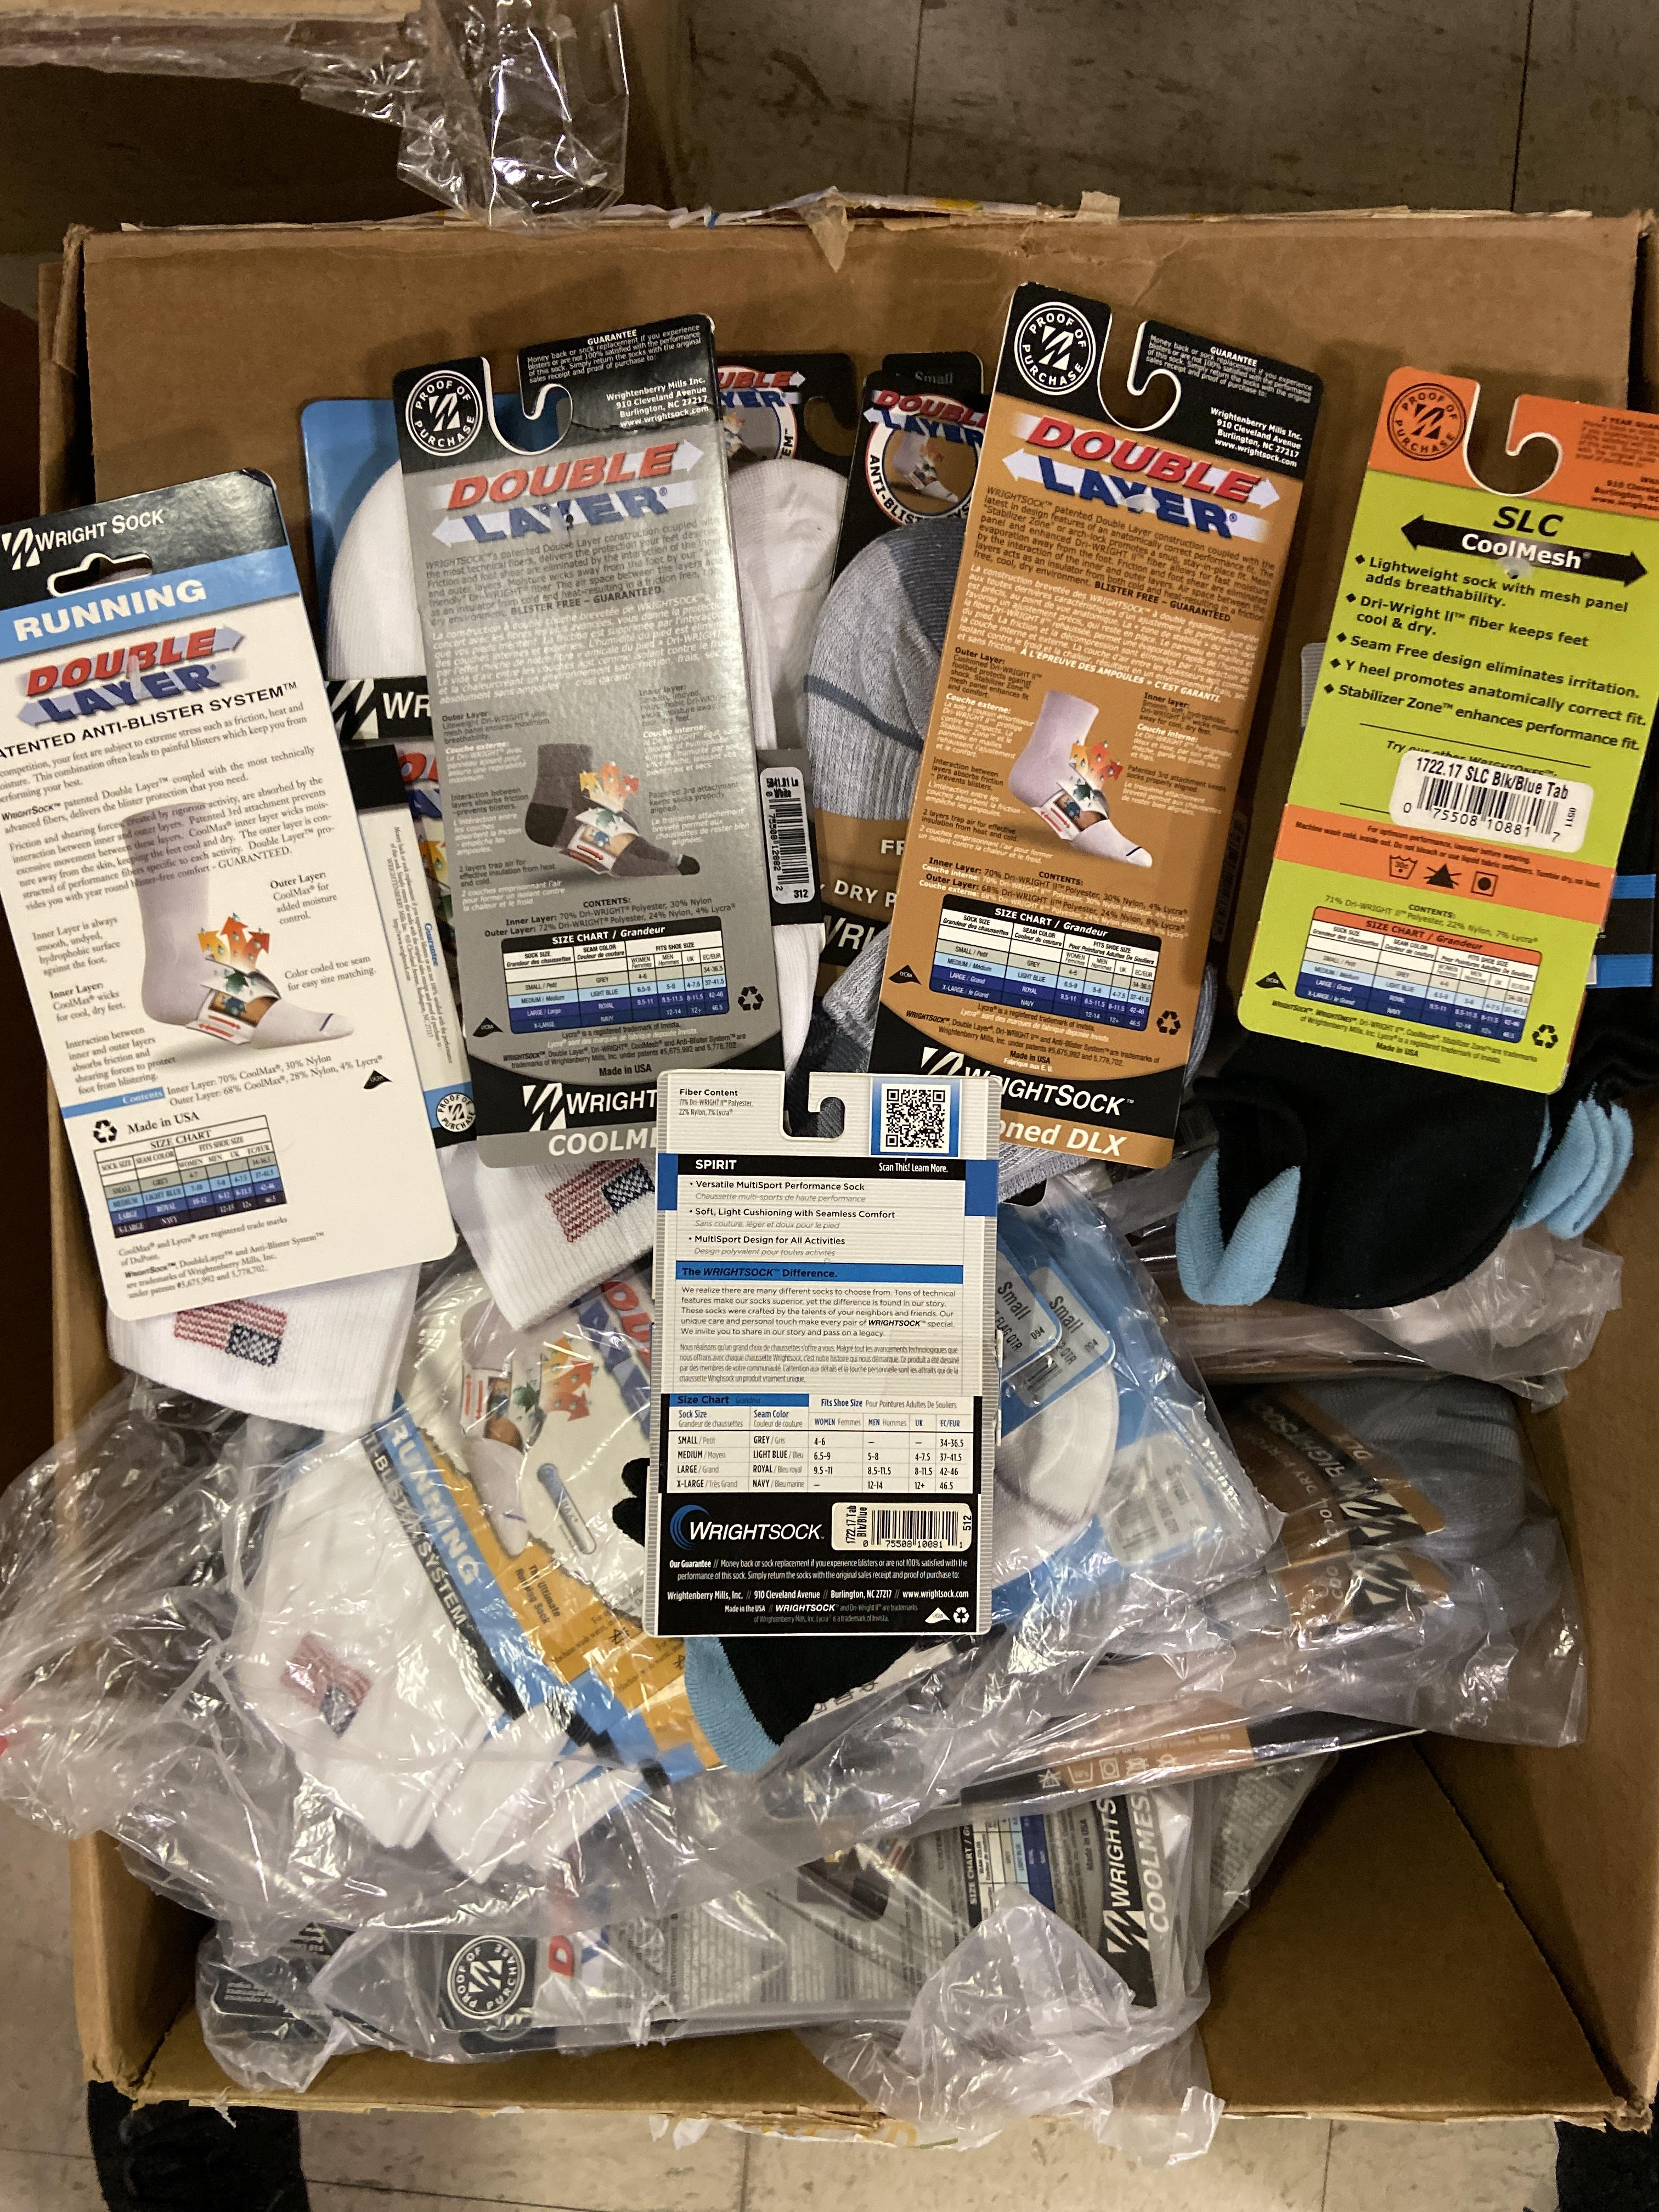 Lot 31 - 250+ packs of New Socks, Wrightsocks Various Styles, Various Colors Lot includes approximately 250